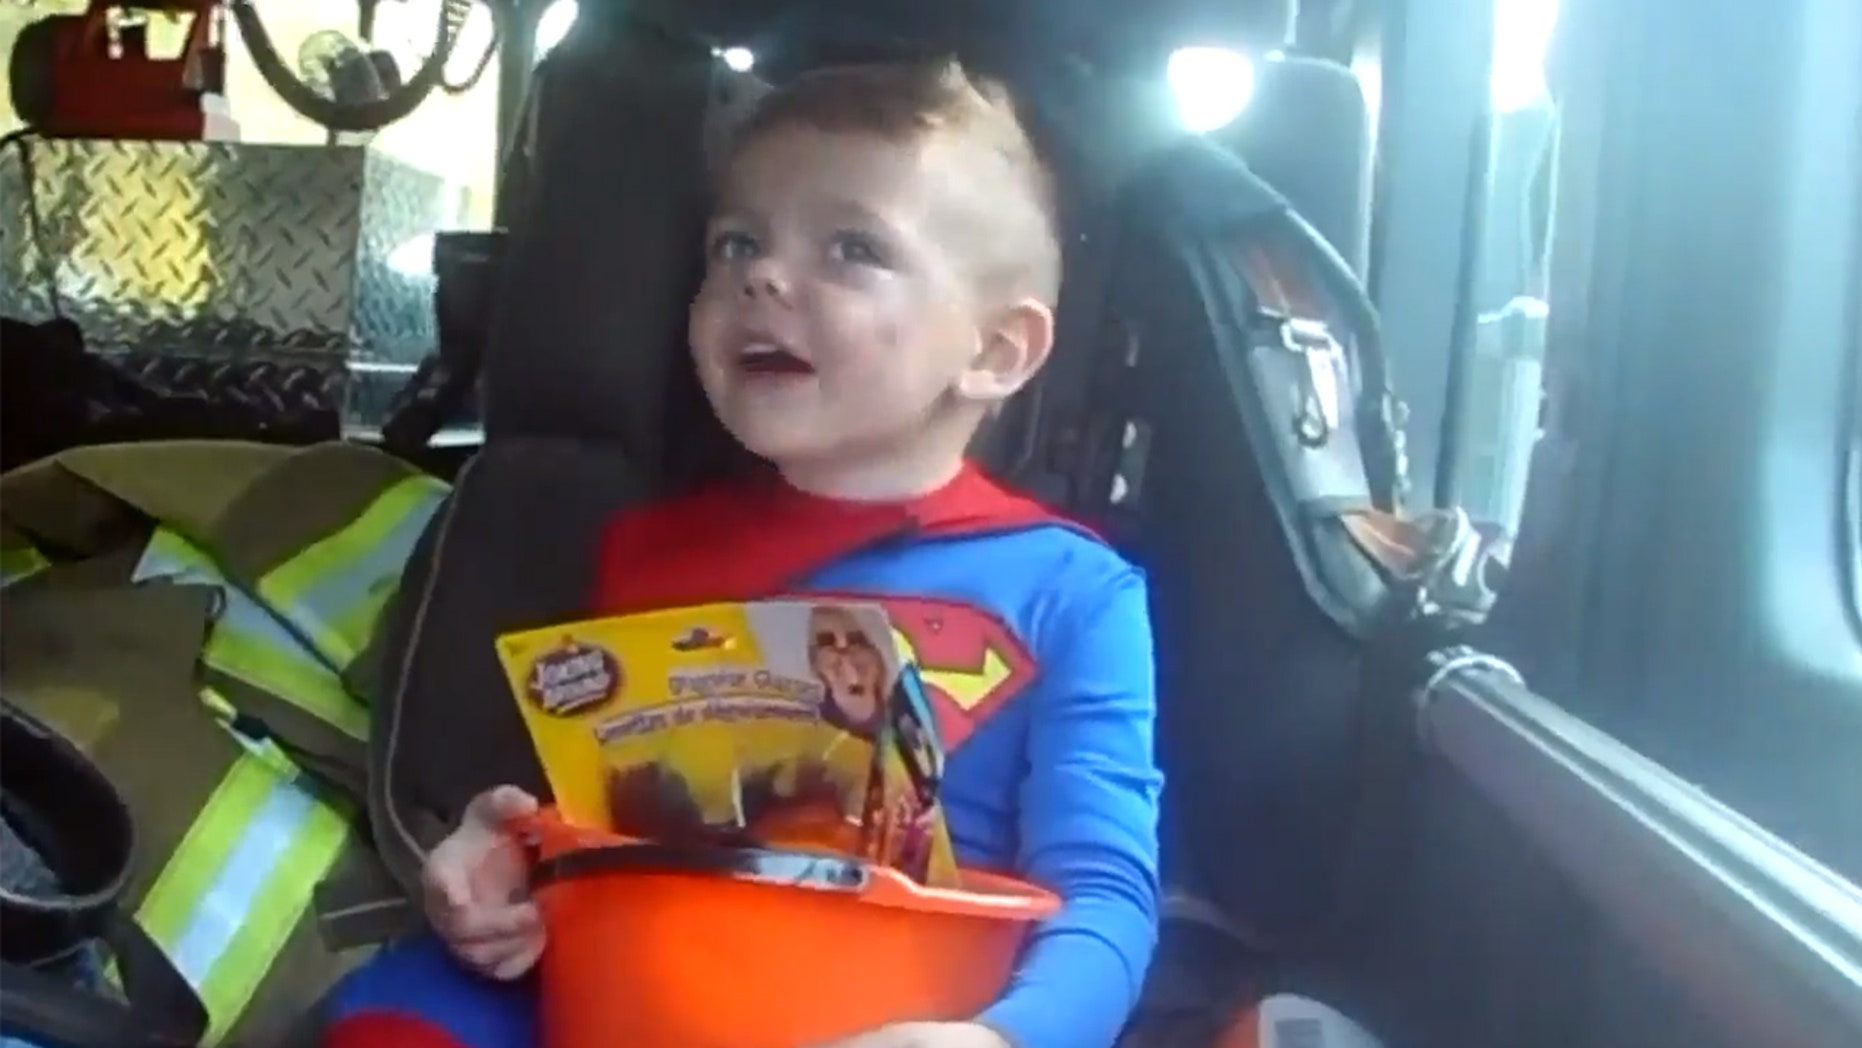 Sonny's favorite holiday came a week early and included a ride in a fire truck after residents in one Illinois neighborhood found out that he'd be sidelined during next week's festivities due to an upcoming surgery.